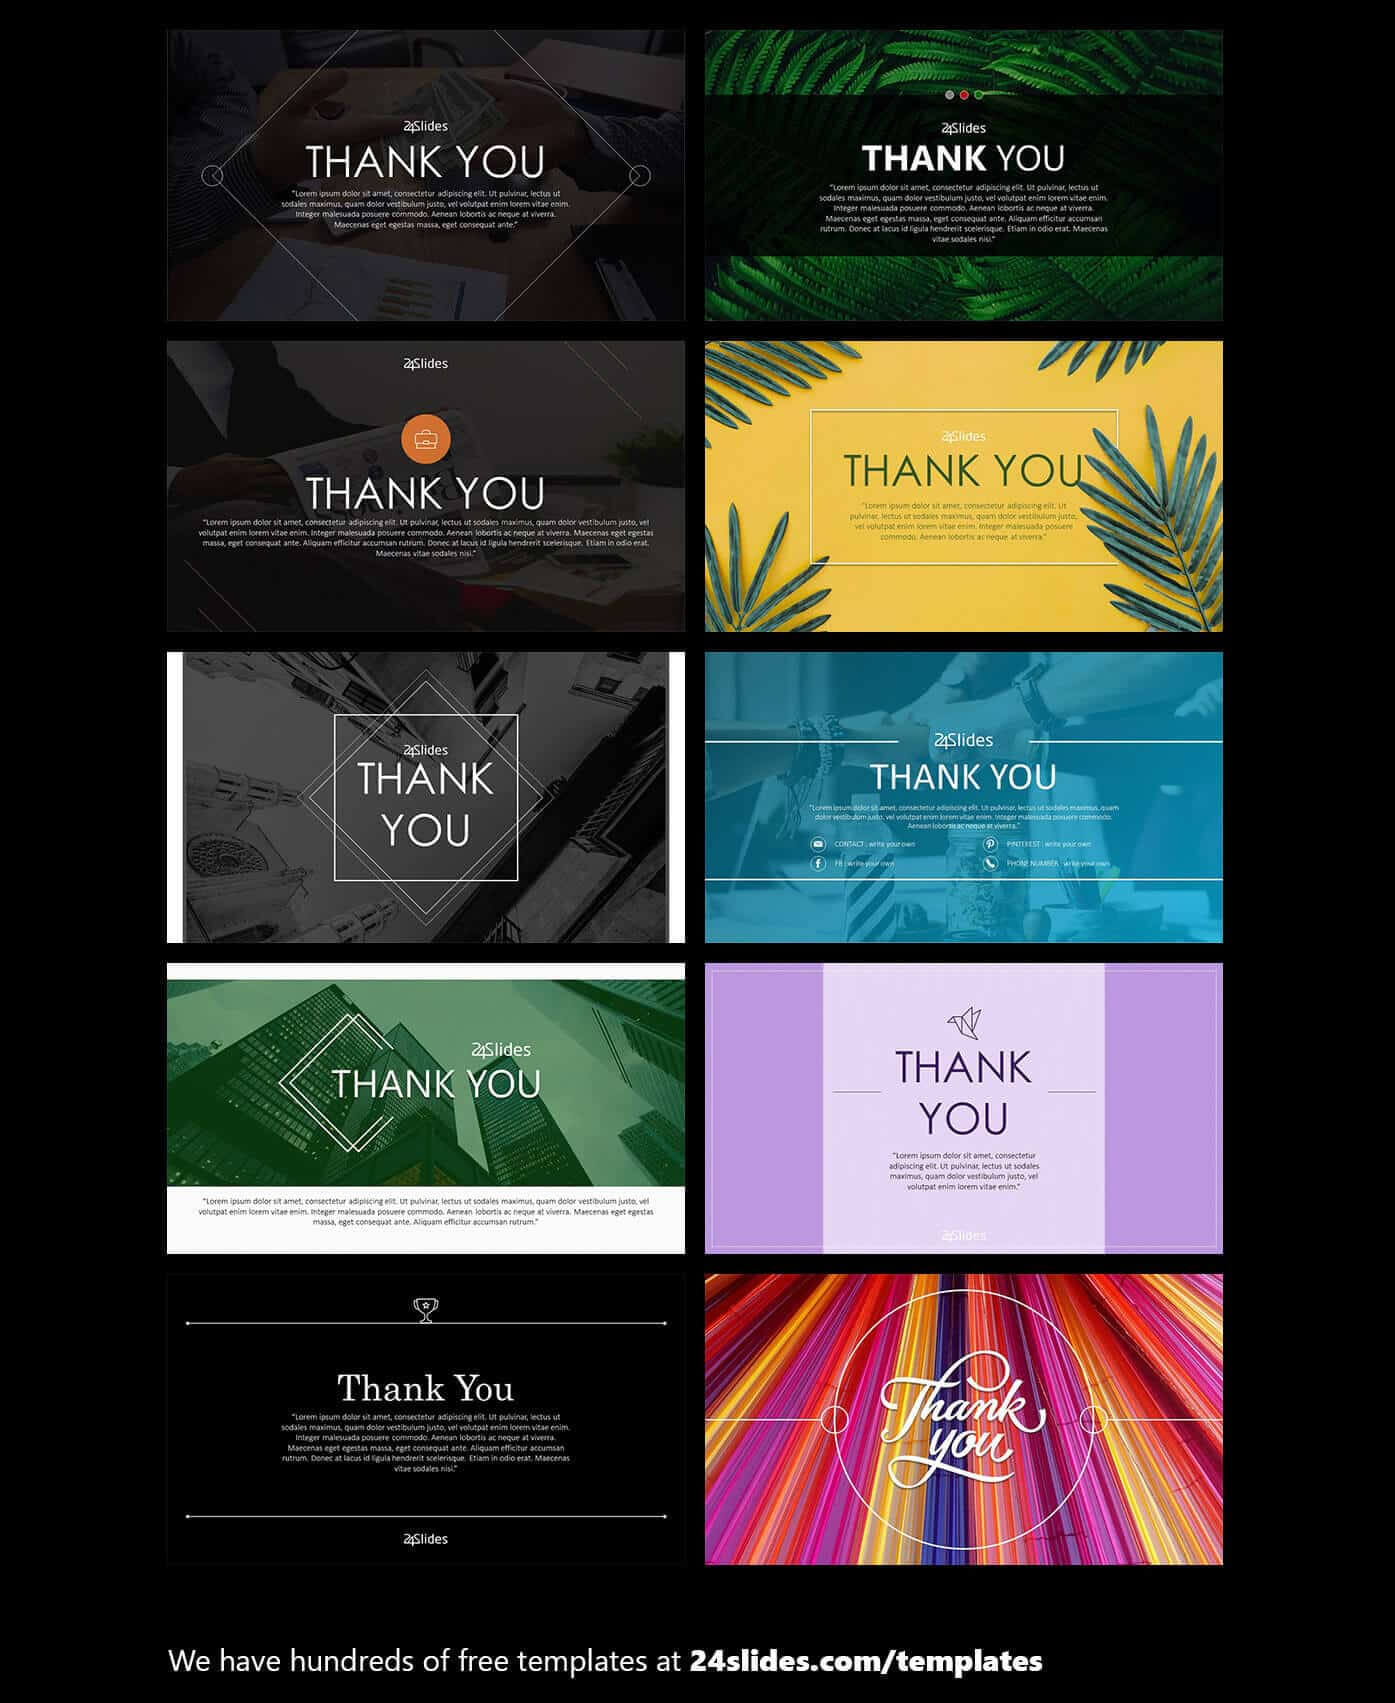 15 Fun And Colorful Free Powerpoint Templates   Present Better with Fun Powerpoint Templates Free Download